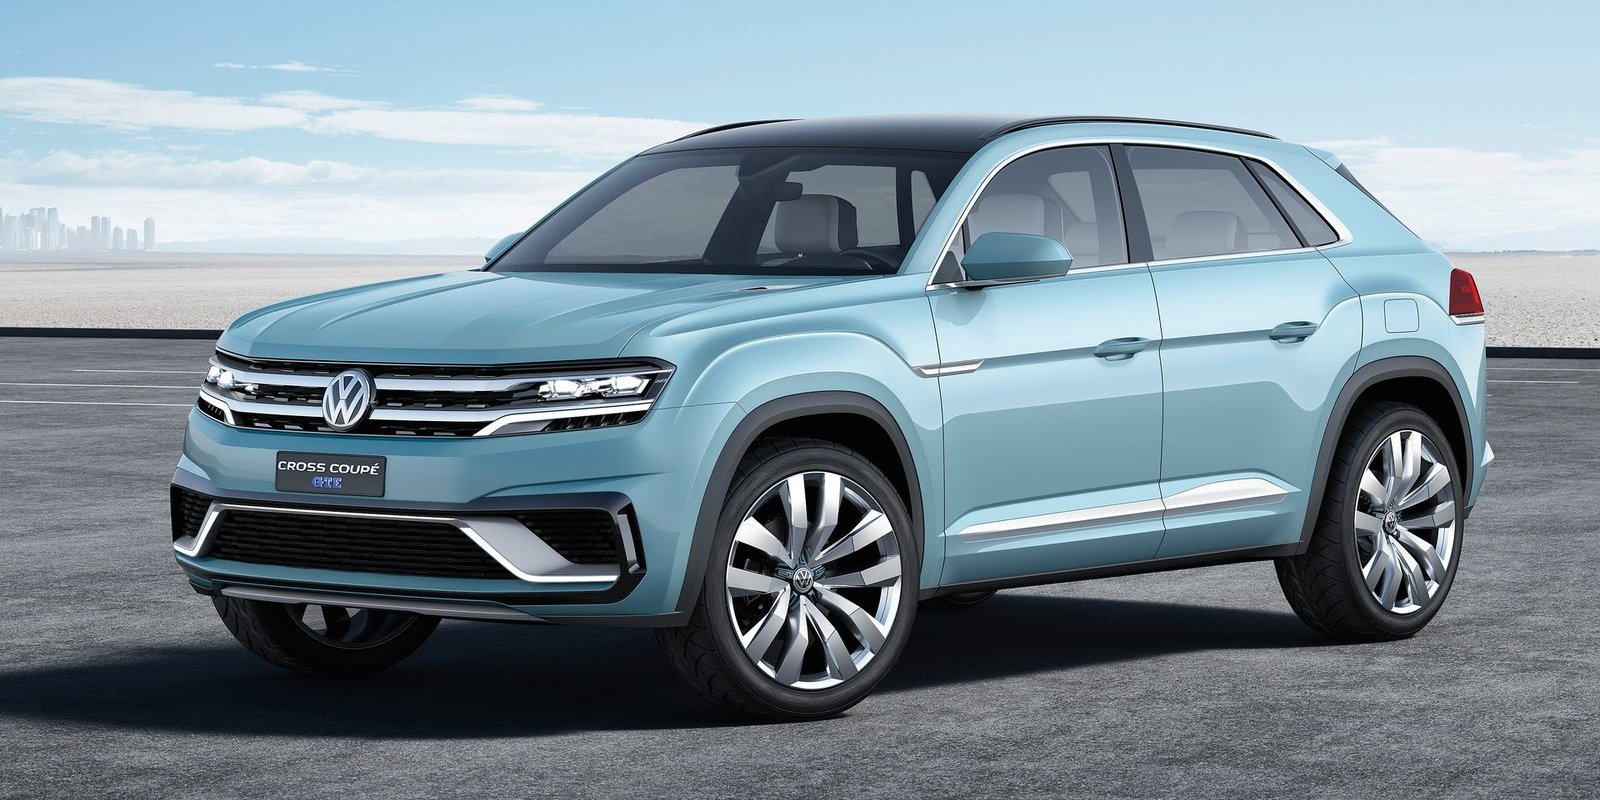 2017 Volkswagen Tiguan seven-seater confirmed to be built in Mexico - Photos (1 of 3)